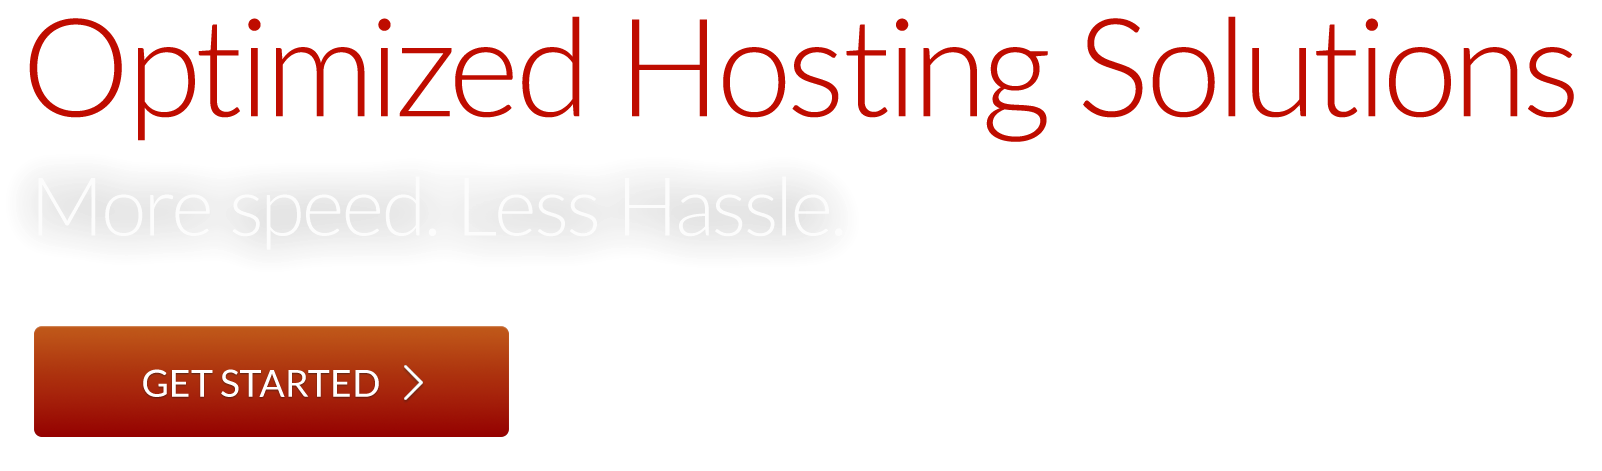 Get Started with Optimized Hosting Solutions